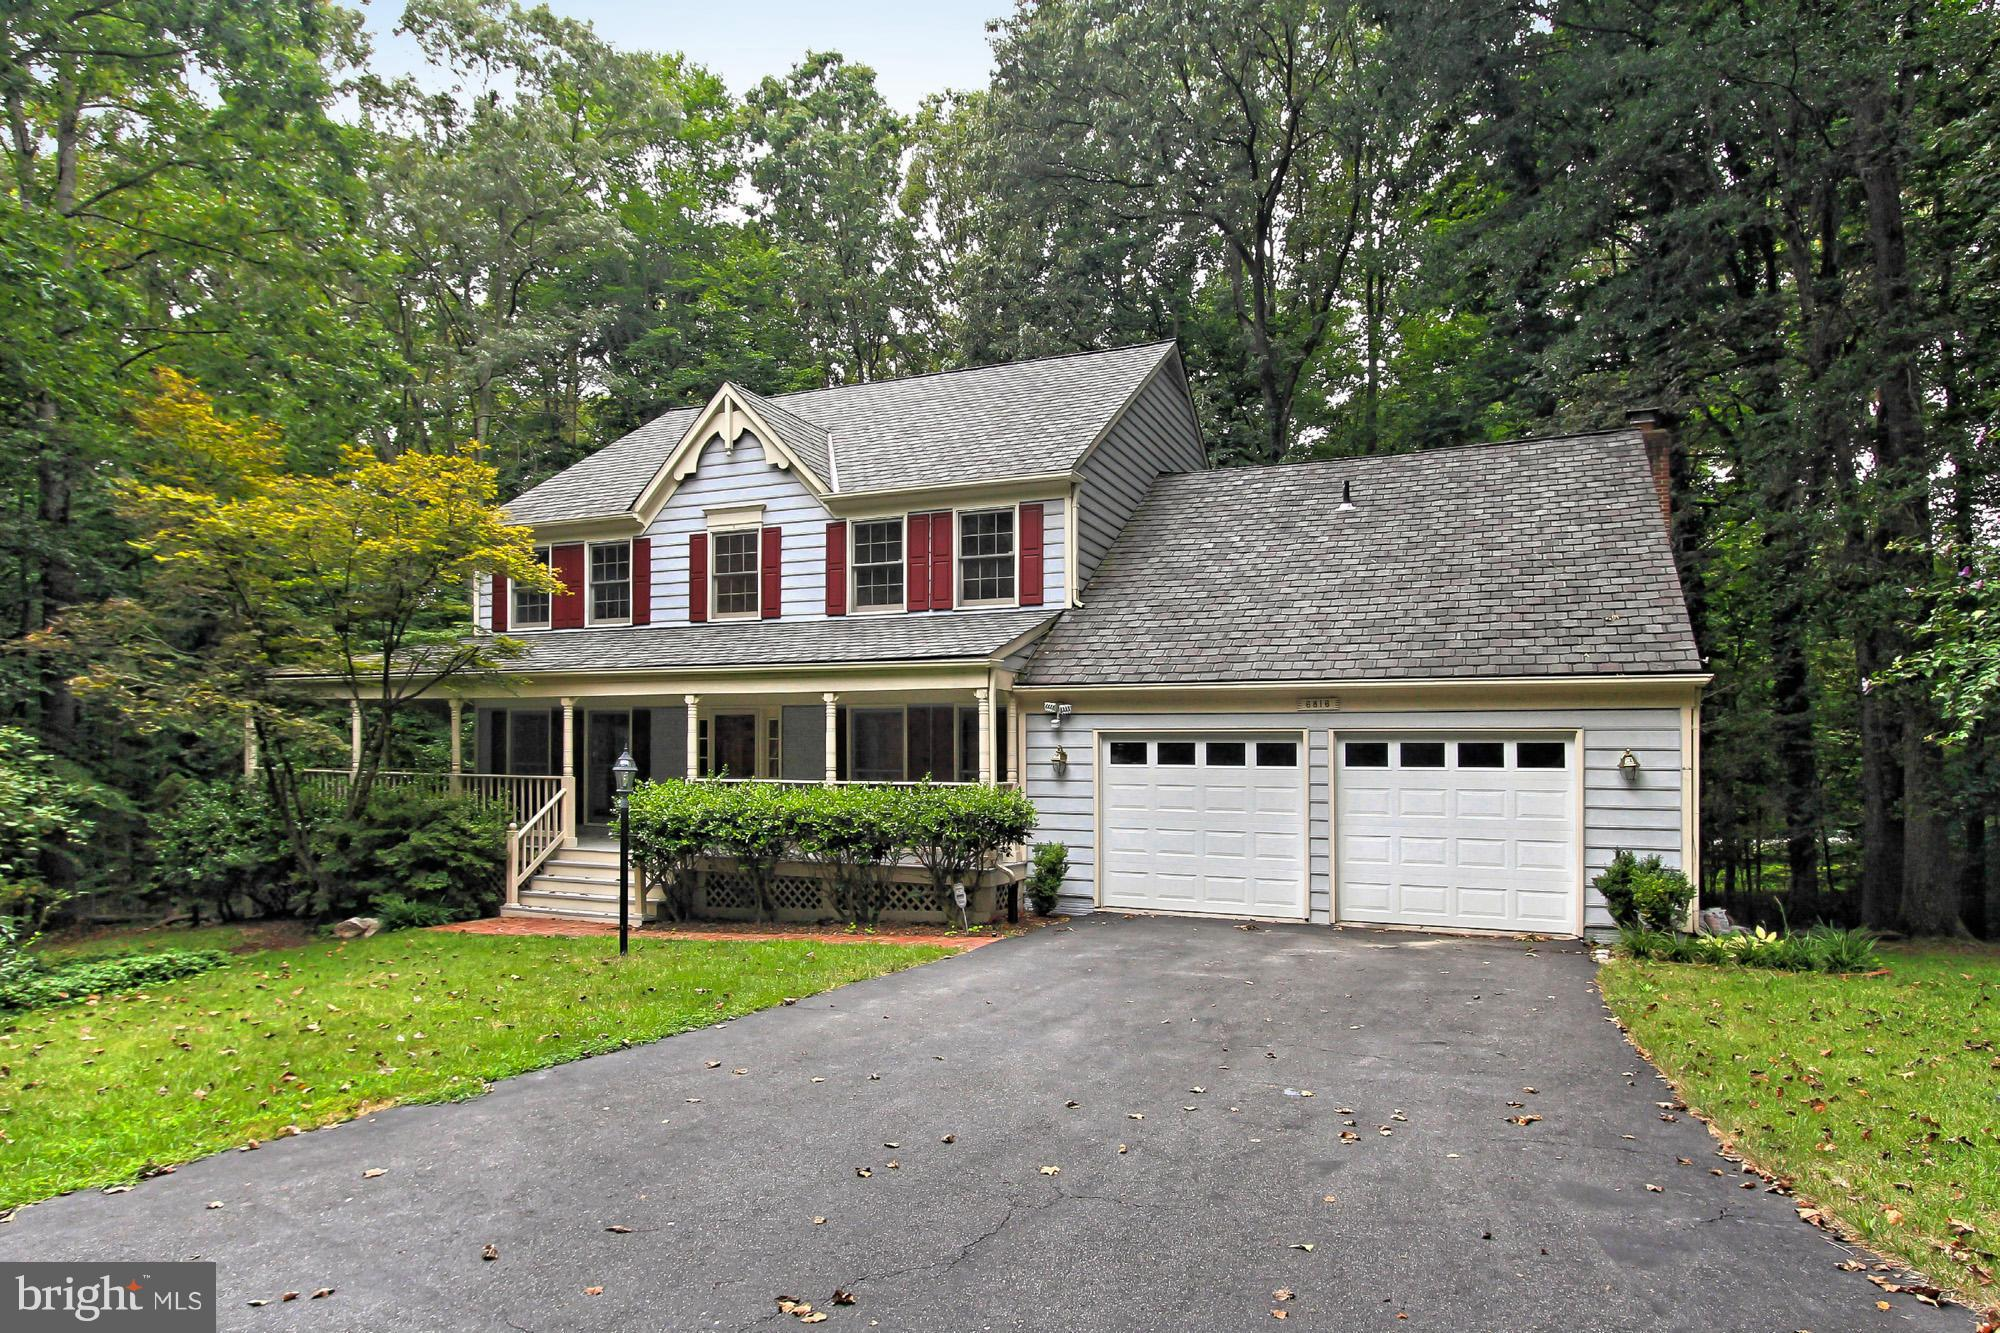 Elegant Colonial home w/5 BR & distinctive wraparound porch*Private/peaceful/idyllic.84 acre setting surrounded by trees*Pvt den on ML w/adj full bath*Refinished hardwoods in LR/DR/entry*Remodeled gourmet kit w/bkfst area/bay window*Great FR off kit w/cath ceilings*Big MBR suite w/lux remodeled pvt bath*Daylight LL w/5th BR/4th full bath/2nd kitchen area*Large deck*Sprinkler system*